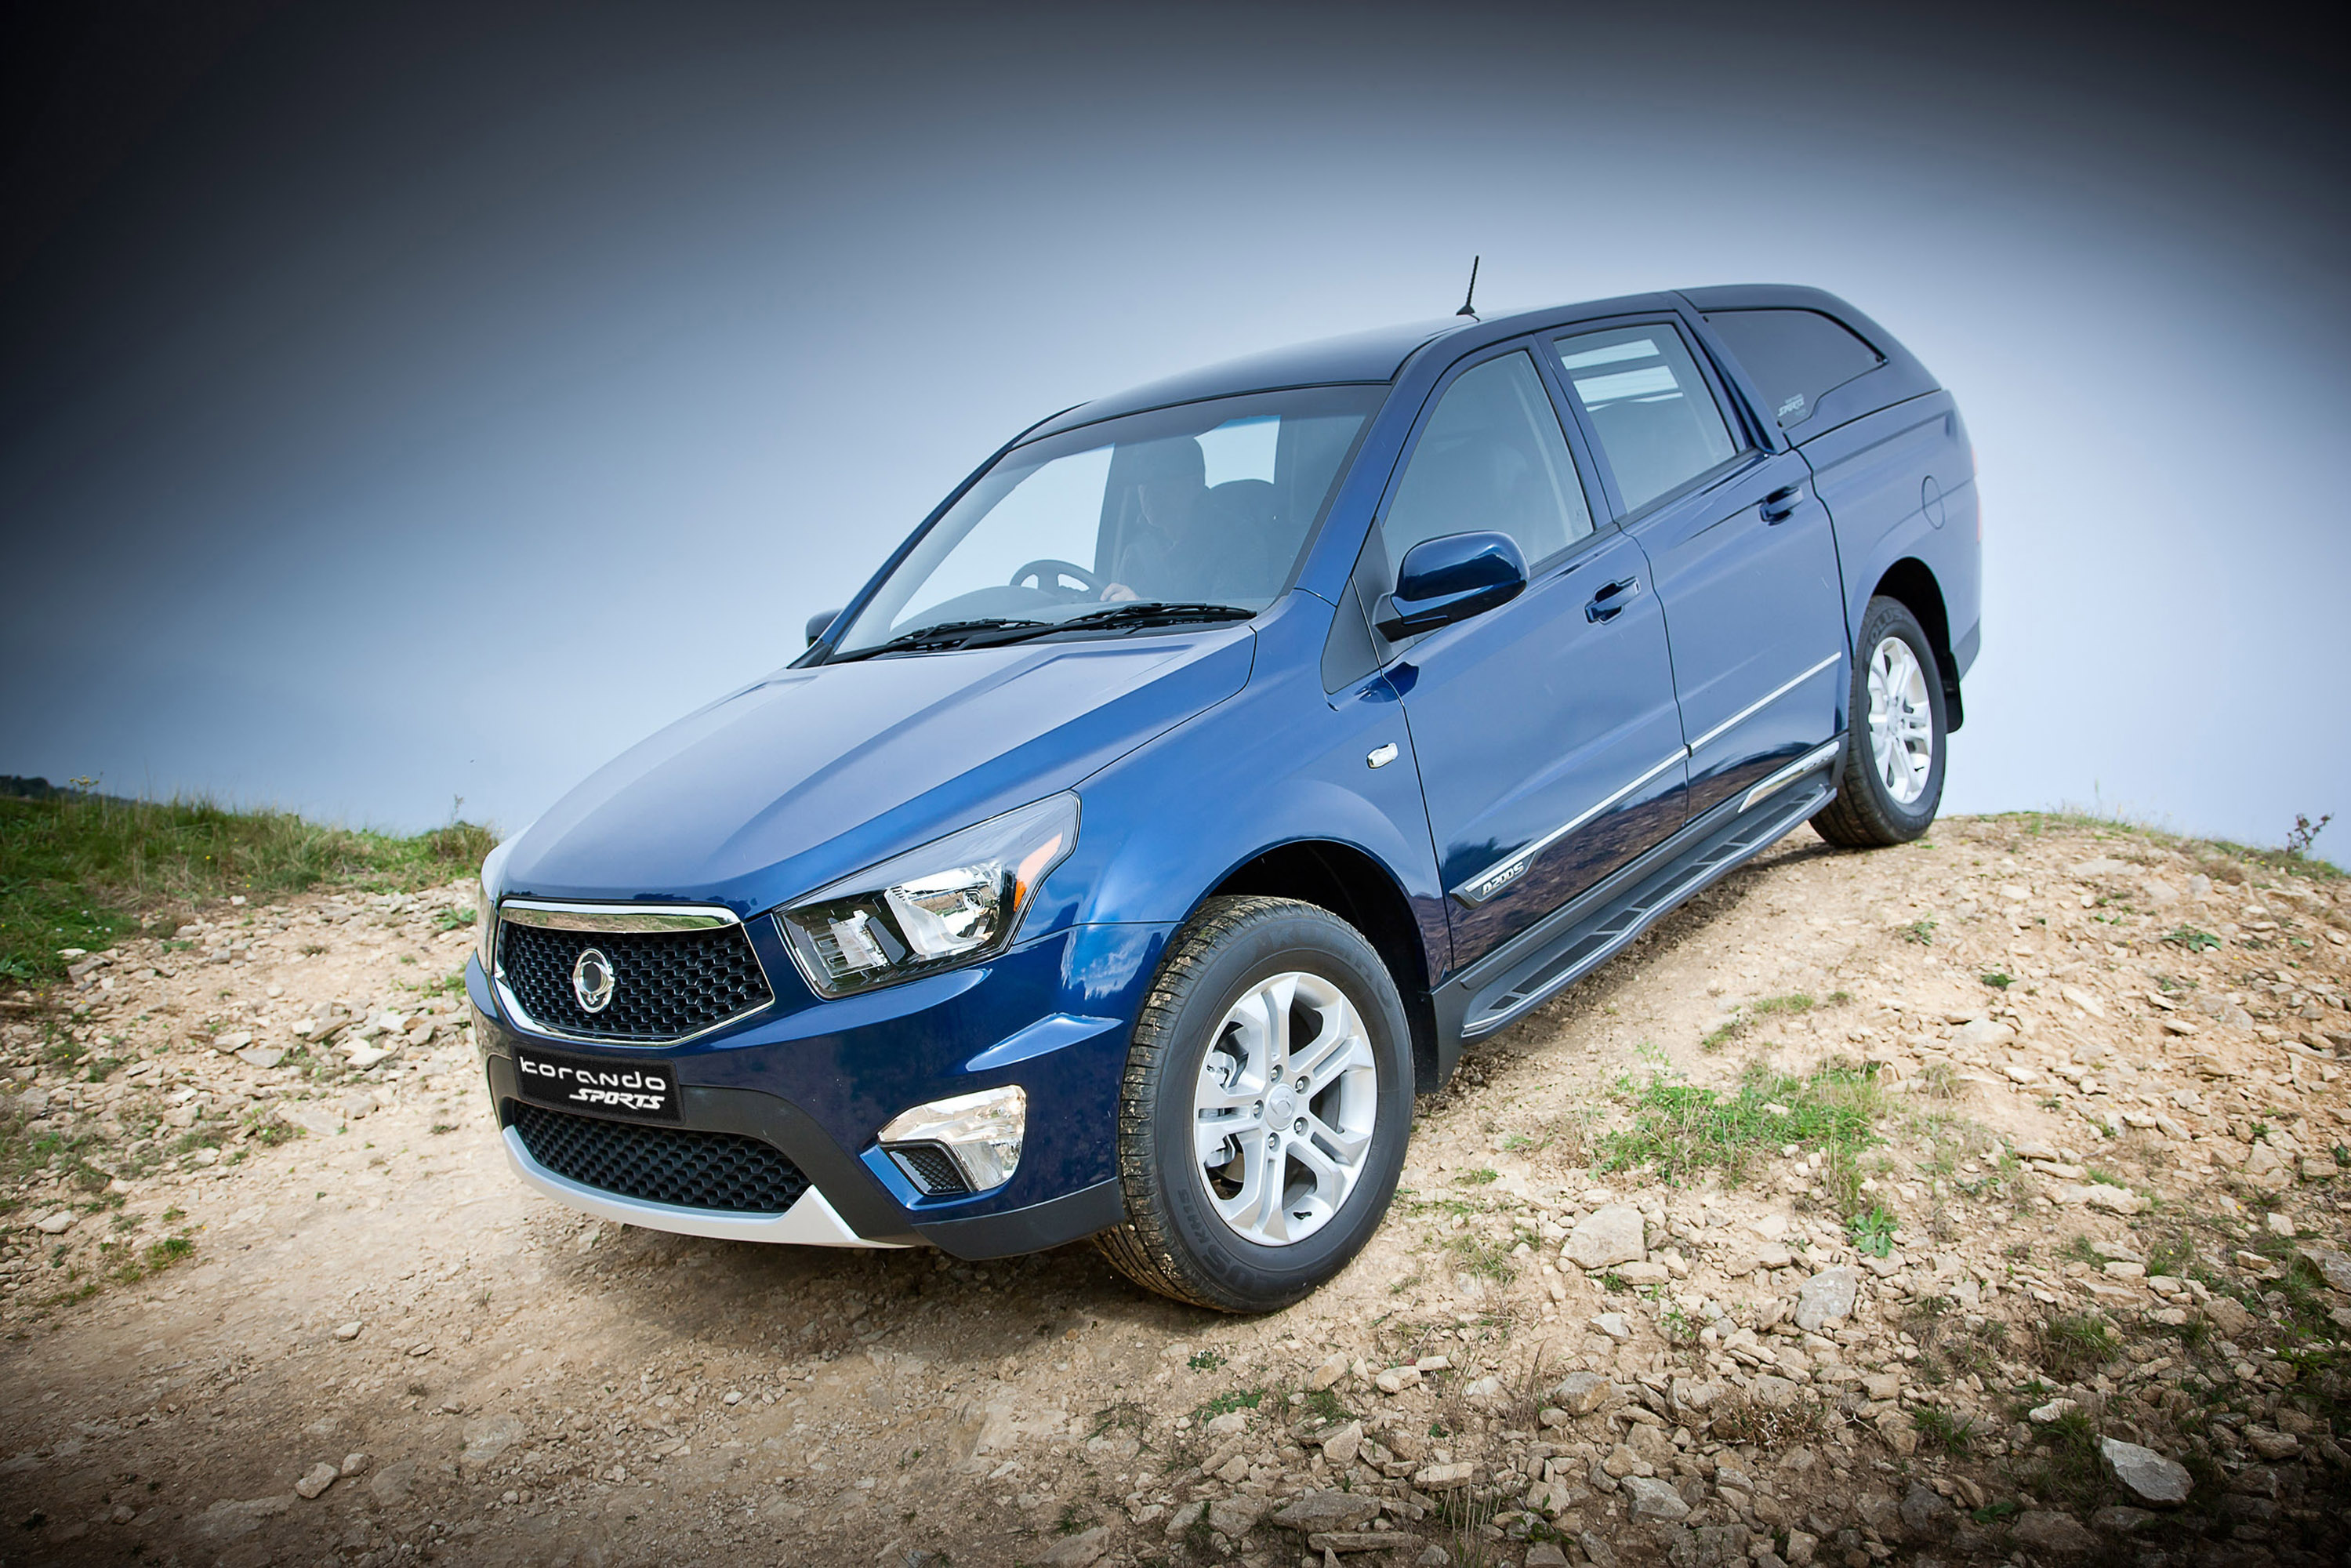 2013-ssangyong-korando-sports-pick-up-05.jpg